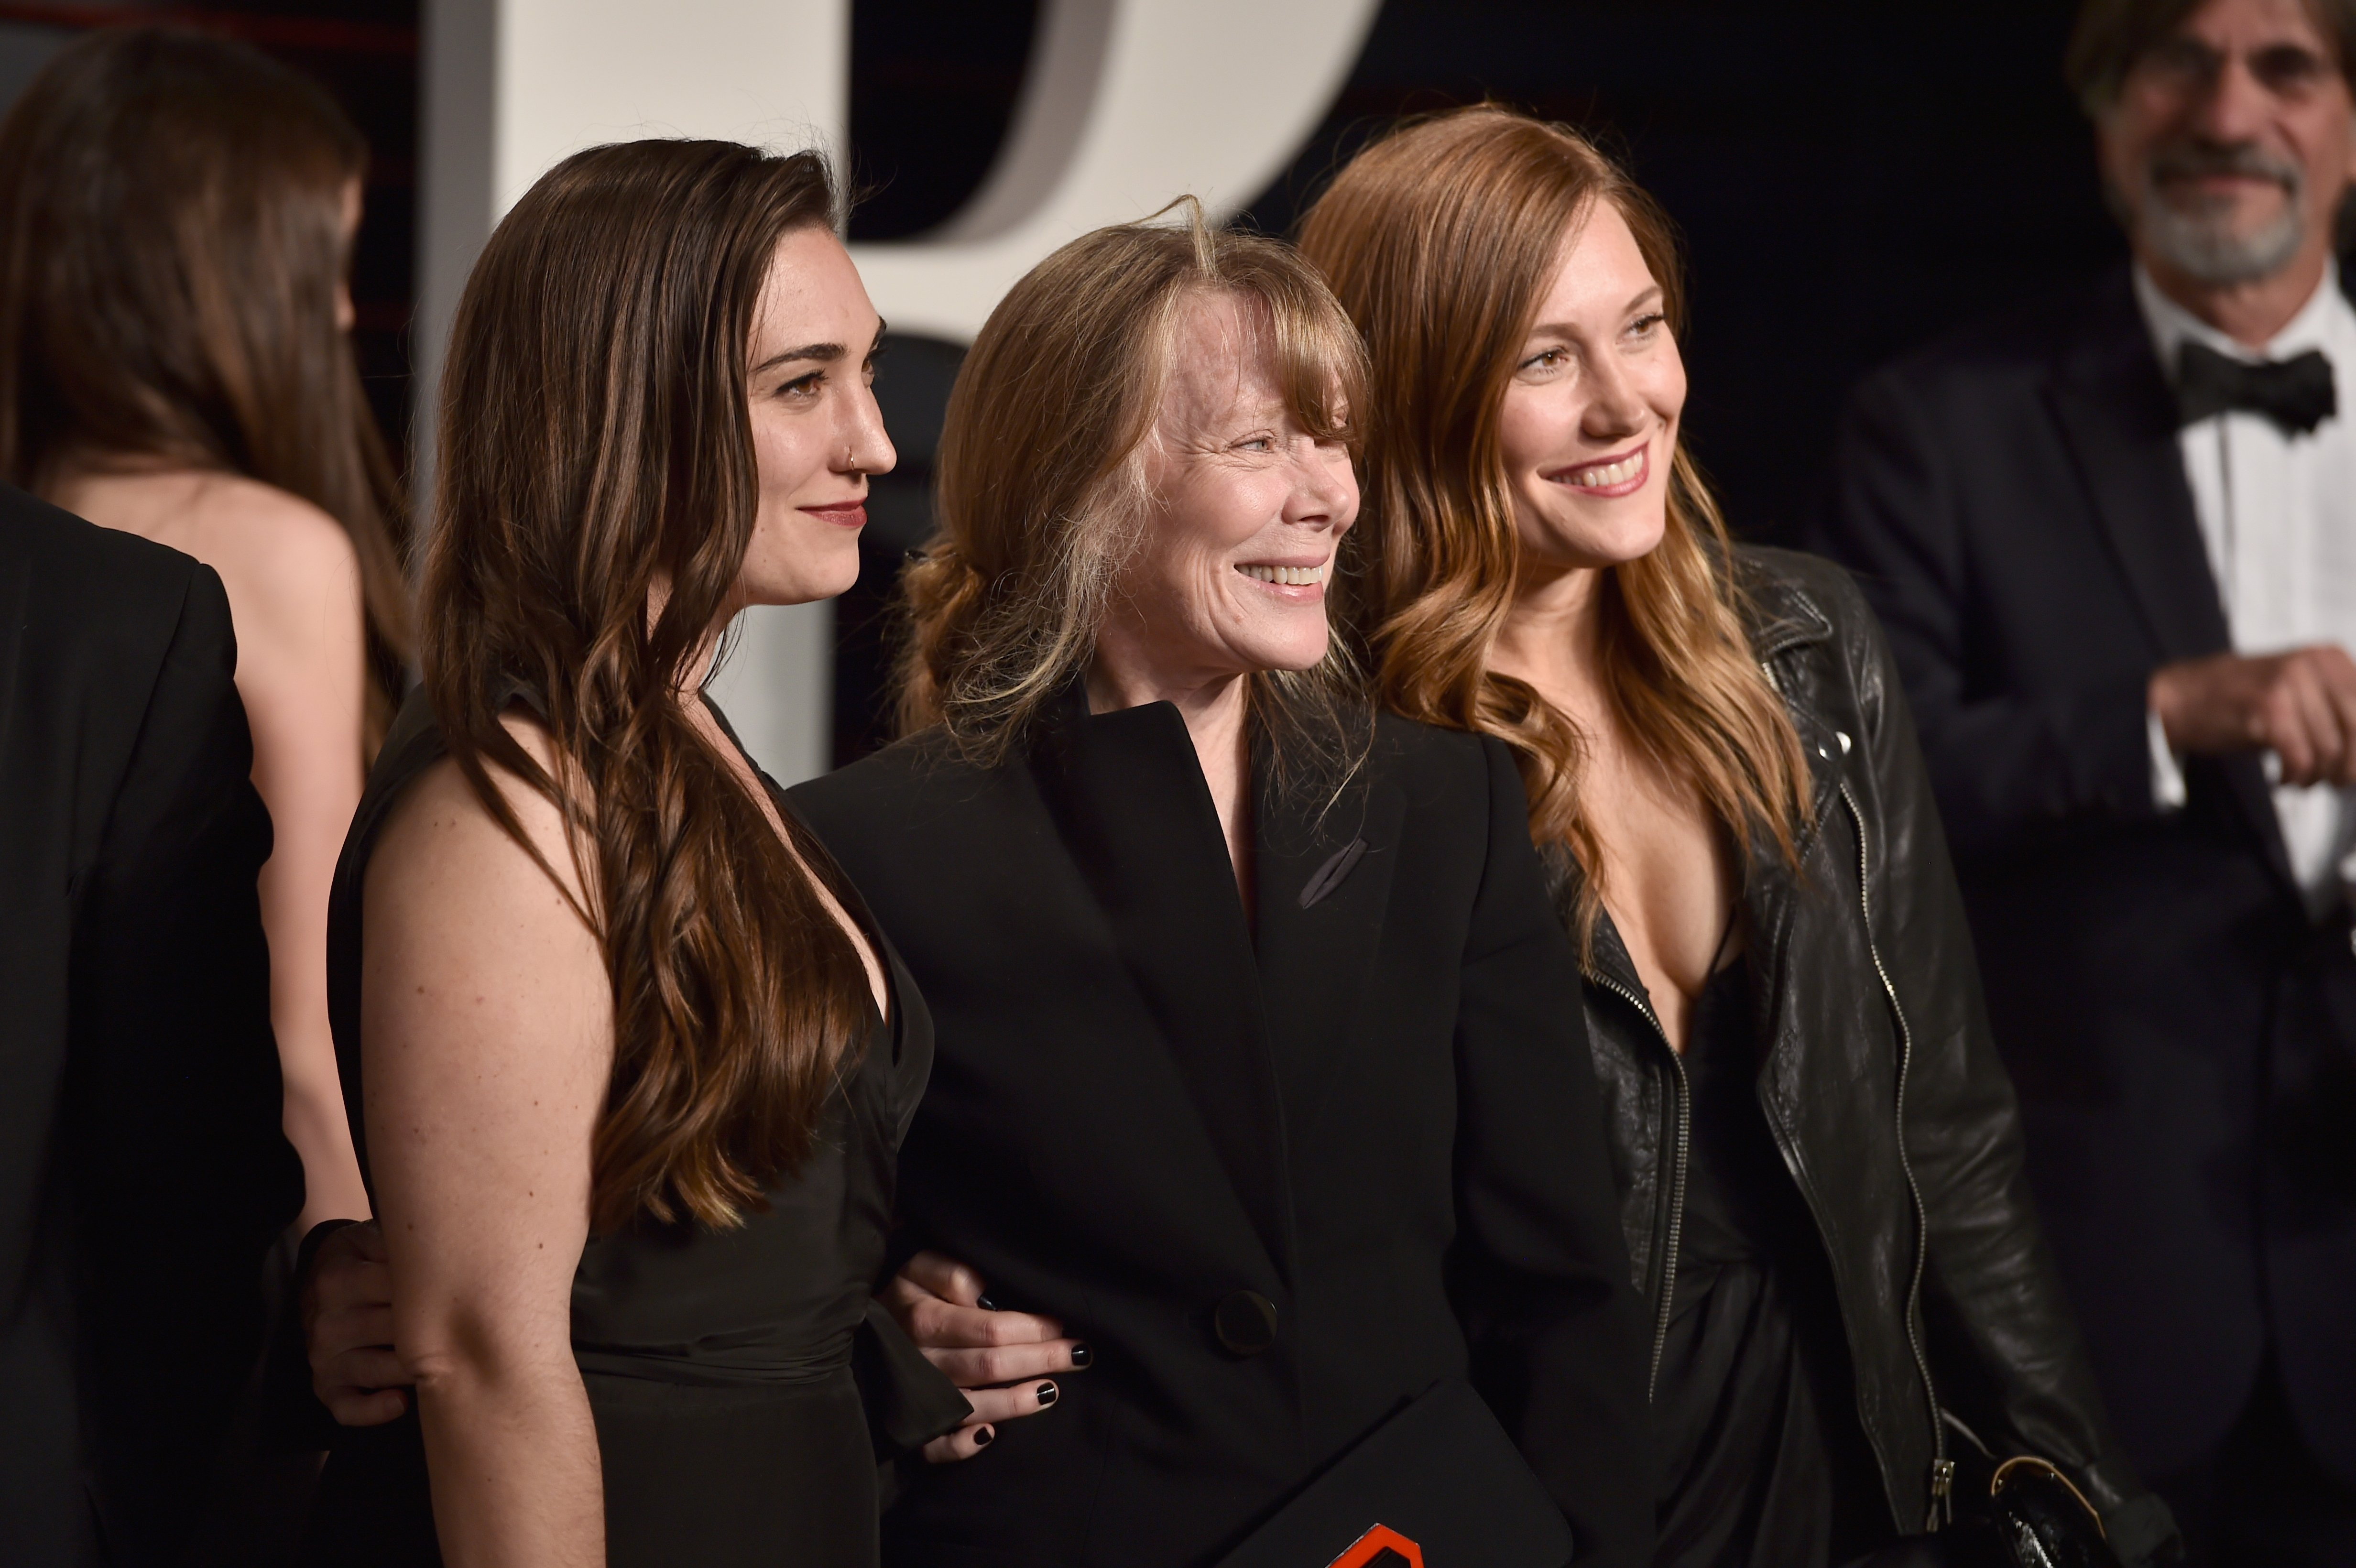 Madison Fisk, Sissy Spacek and Schuyler Fisk attend the 2016 Vanity Fair Oscar Party Hosted By Graydon Carter at the Wallis Annenberg Center for the Performing Arts on February 28, 2016, in Beverly Hills, California. | Source: Getty Images.